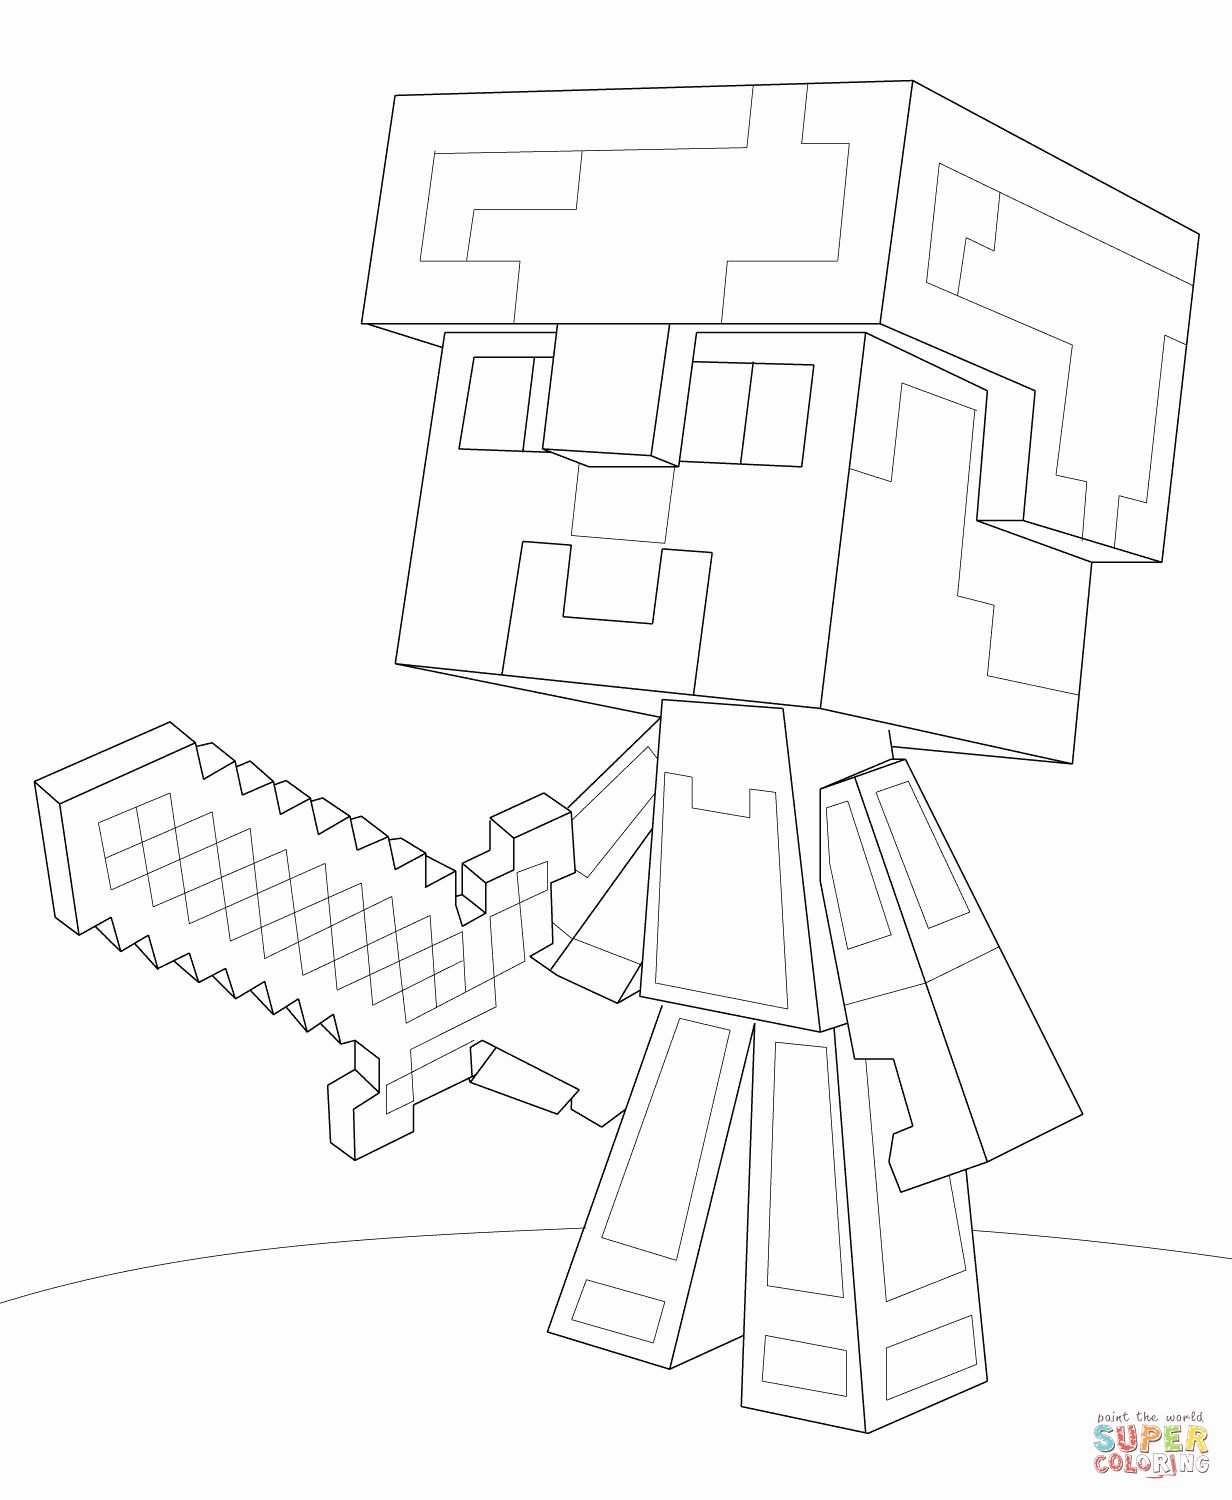 Minecraft Steve Coloring Page Lovely Minecraft Steve Diamond Armor Coloring Page In 2020 Minecraft Printables Minecraft Coloring Pages Minecraft Steve